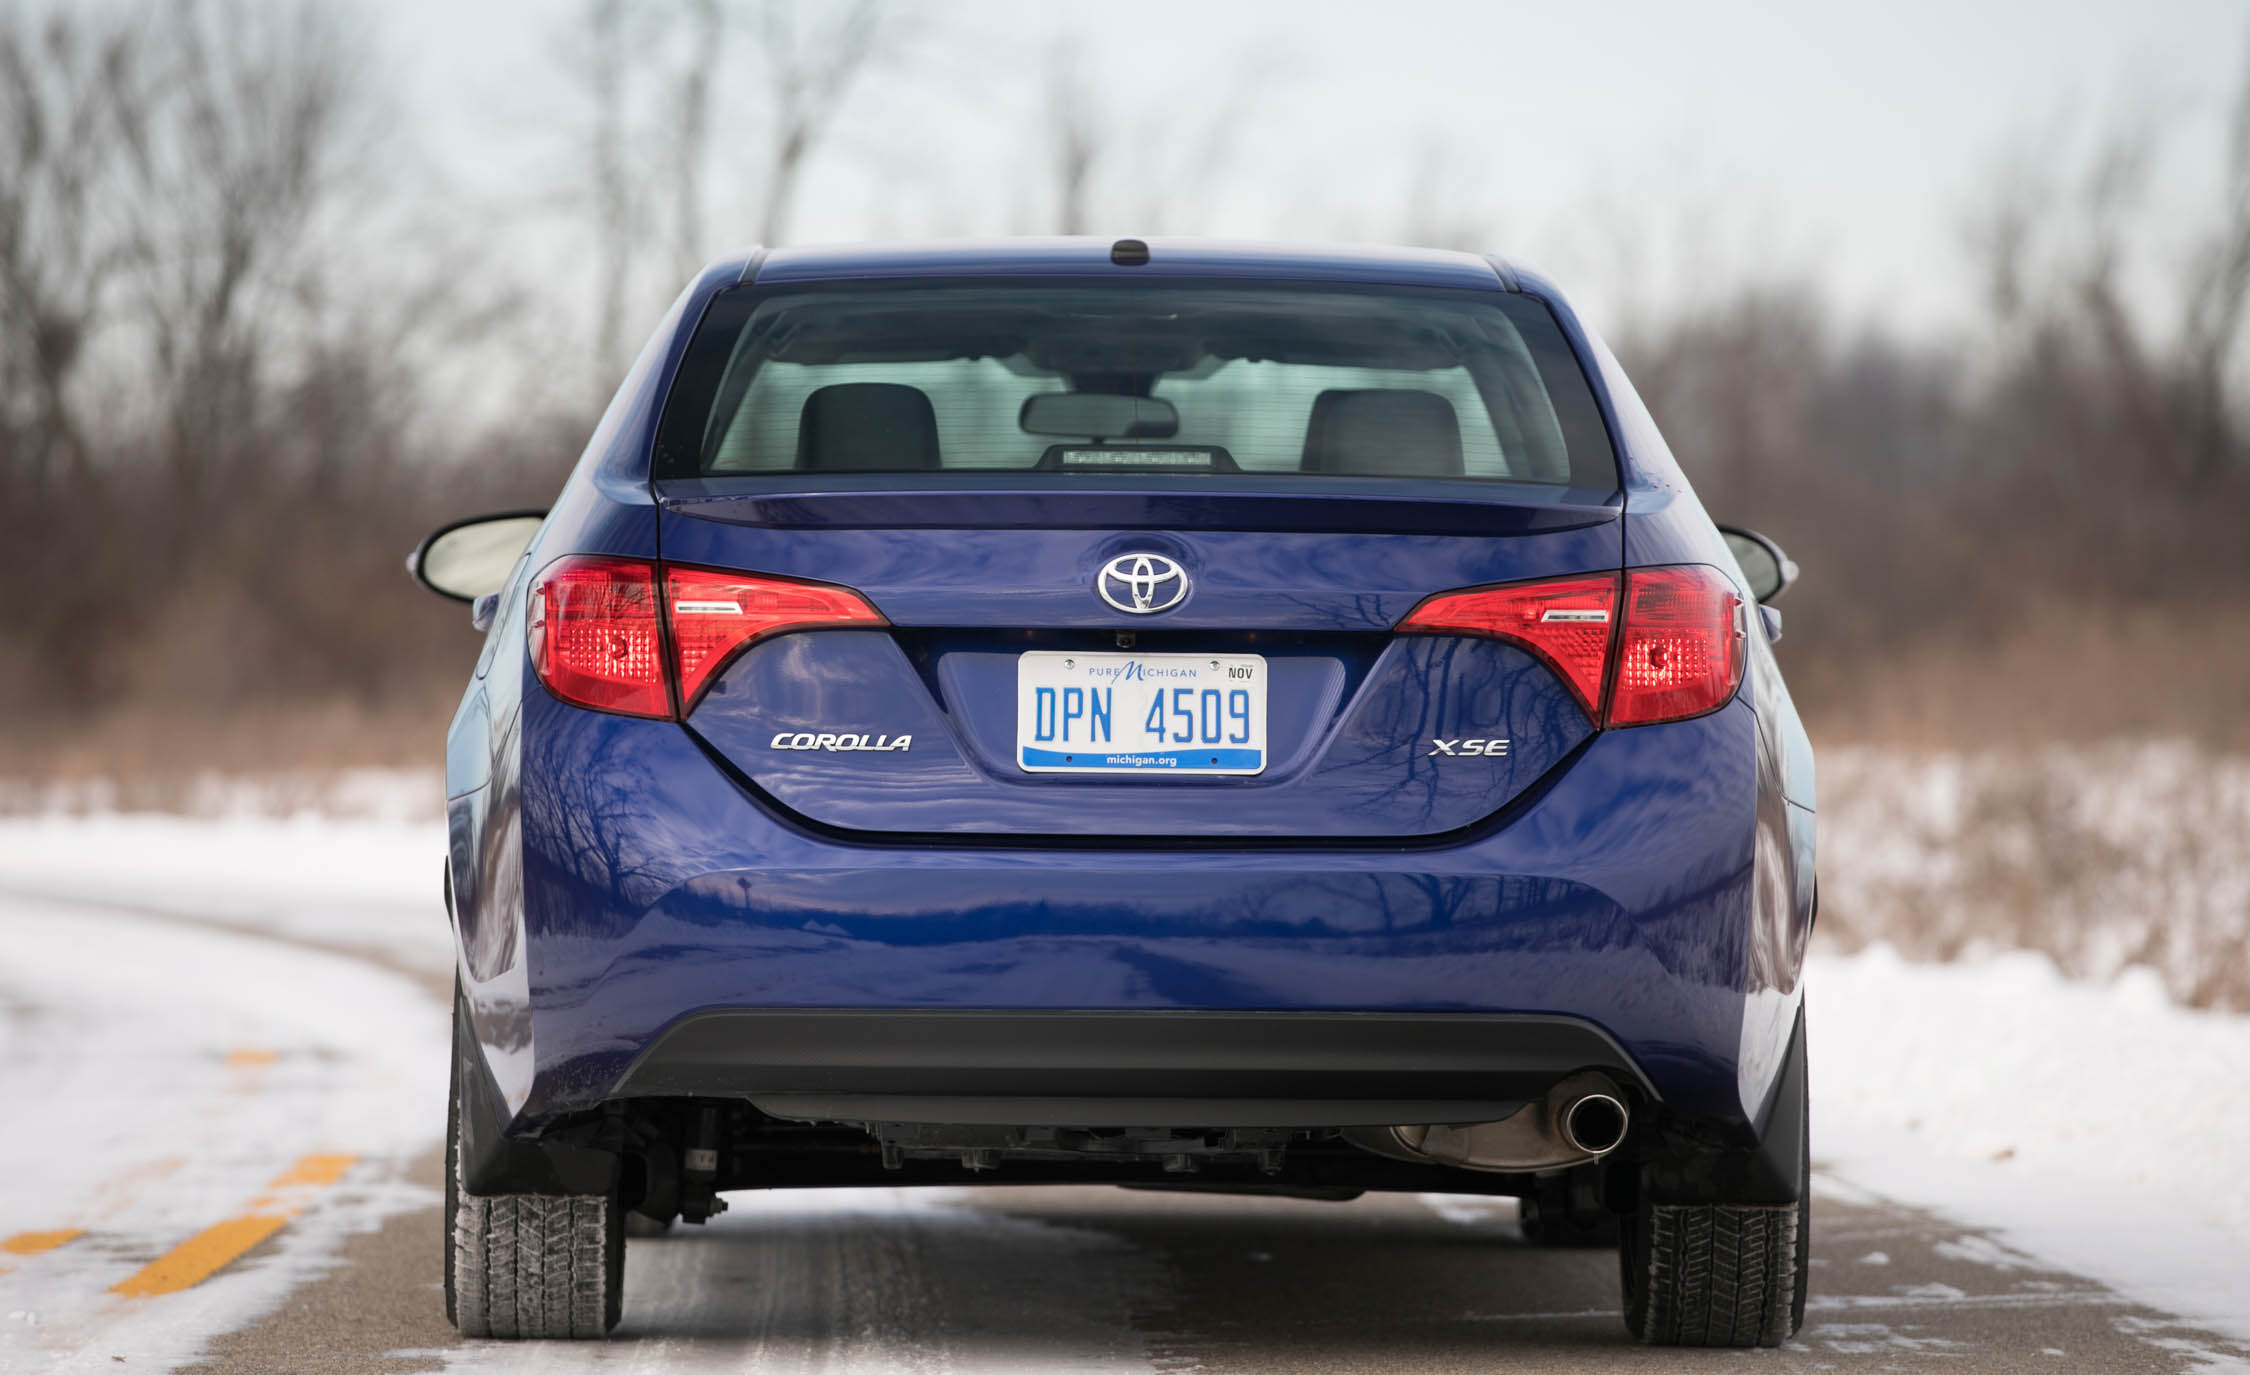 2017 Toyota Corolla XSE Exterior Rear (Photo 37 of 75)